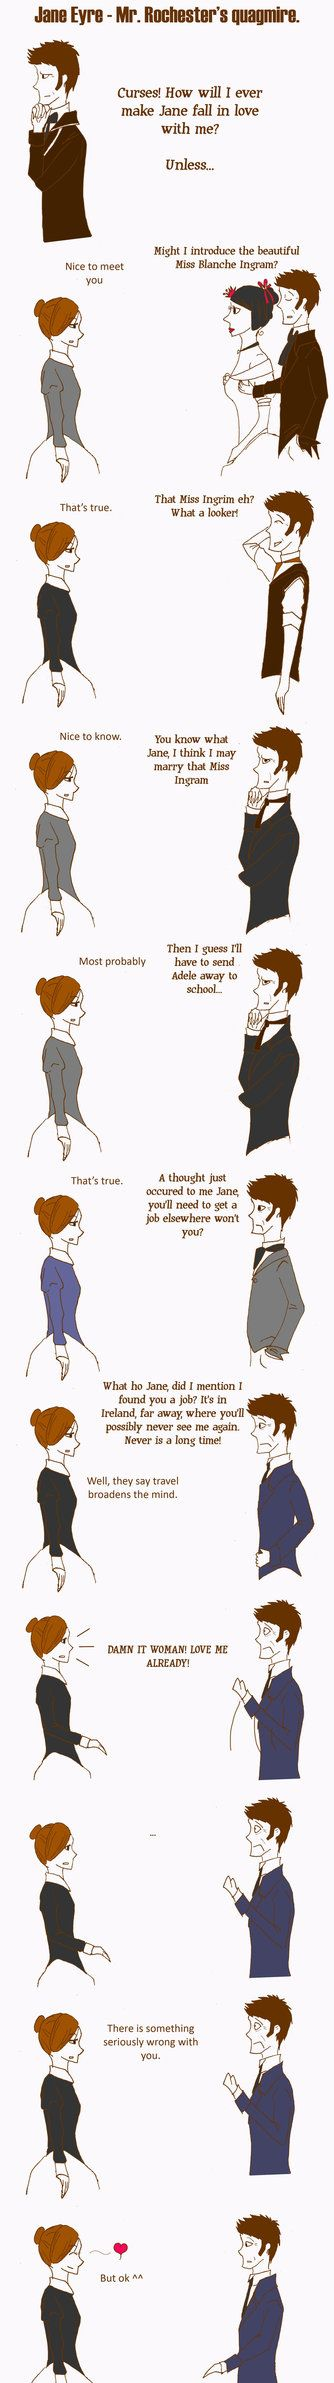 Damn it Woman! Love me already! - Jane Eyre humor   (Not a Jane Austen book but going on the board anyway)